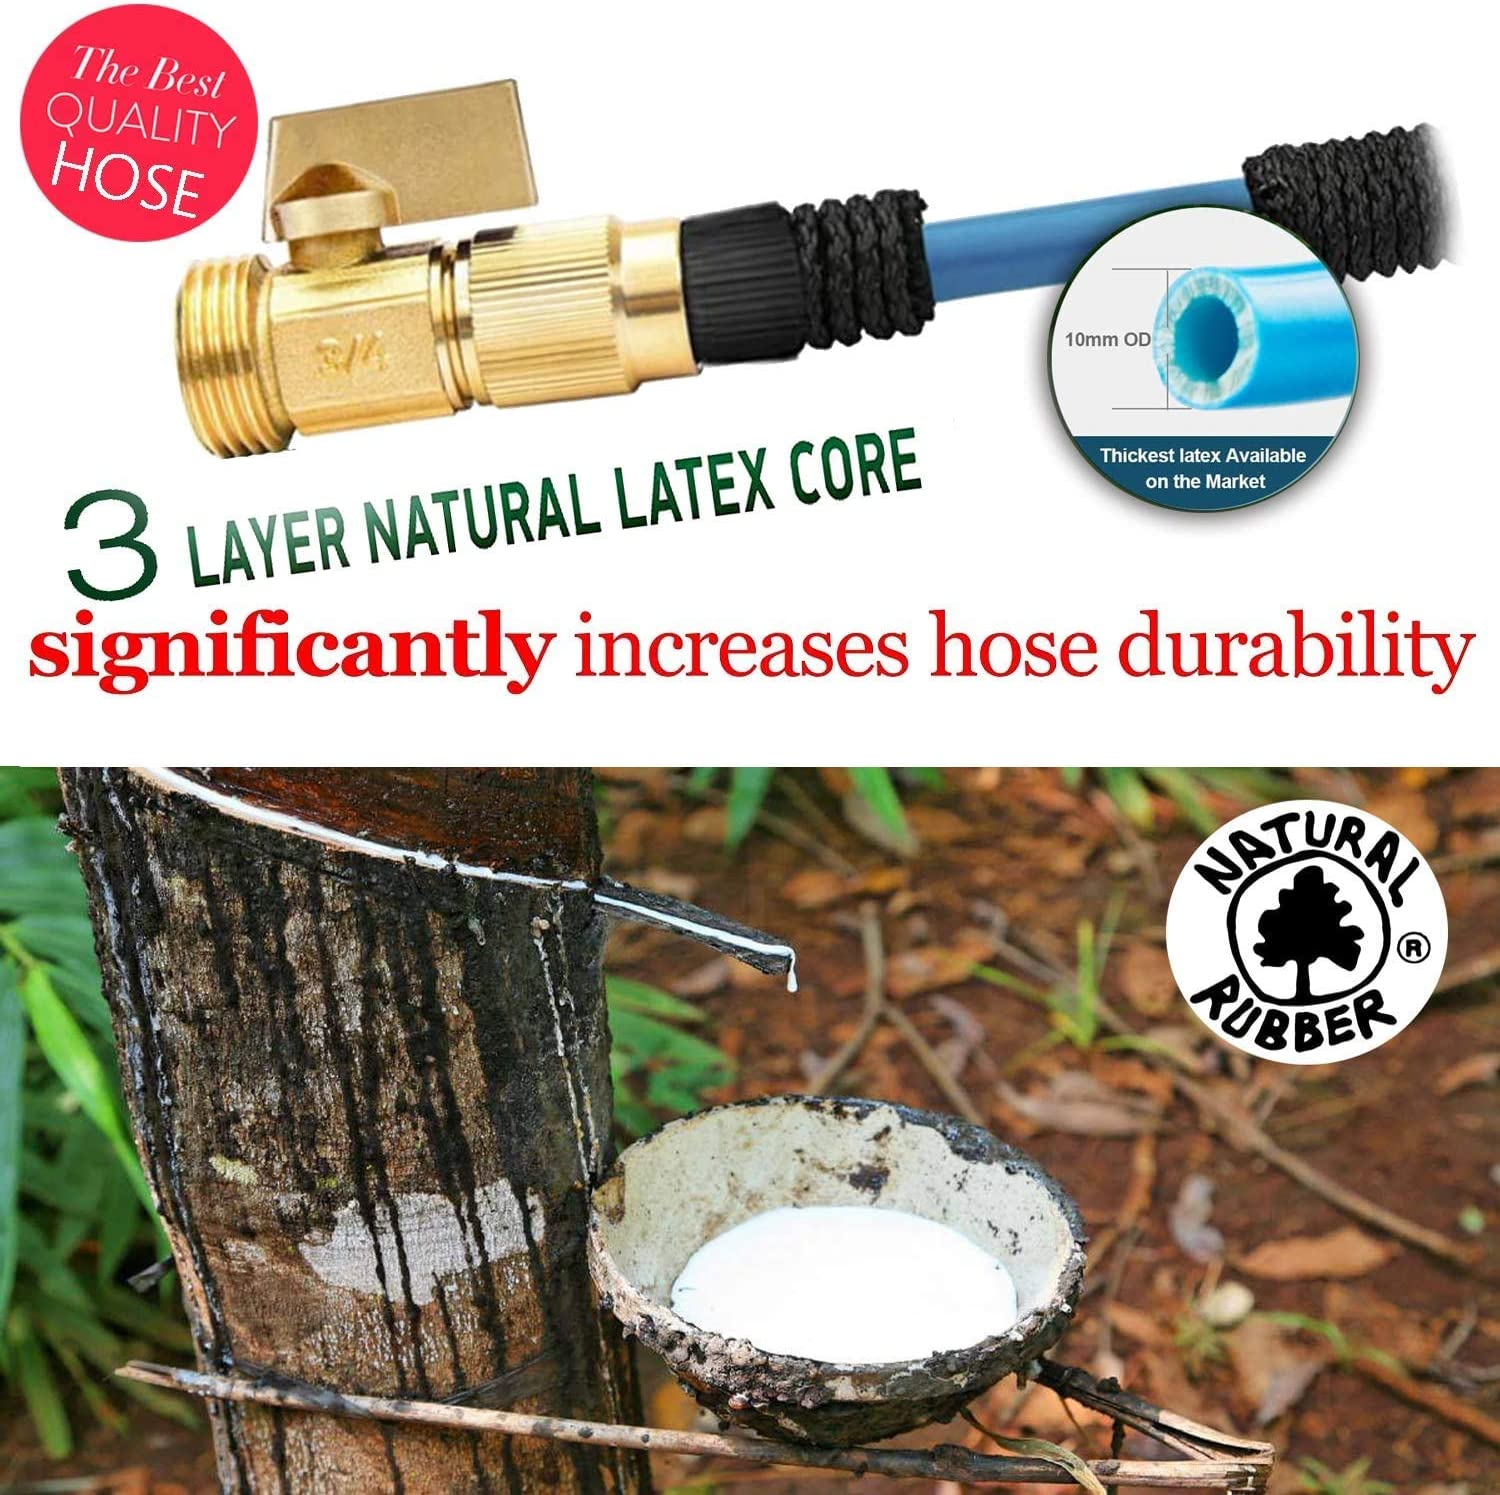 wyewye Garden Hose Expandable Garden Hose 25 ft Garden Hose with Triple Layer Latex Core 3750 D Extra Strength Fabric for All Your Watering Need 3//4 Solid Brass Fittings